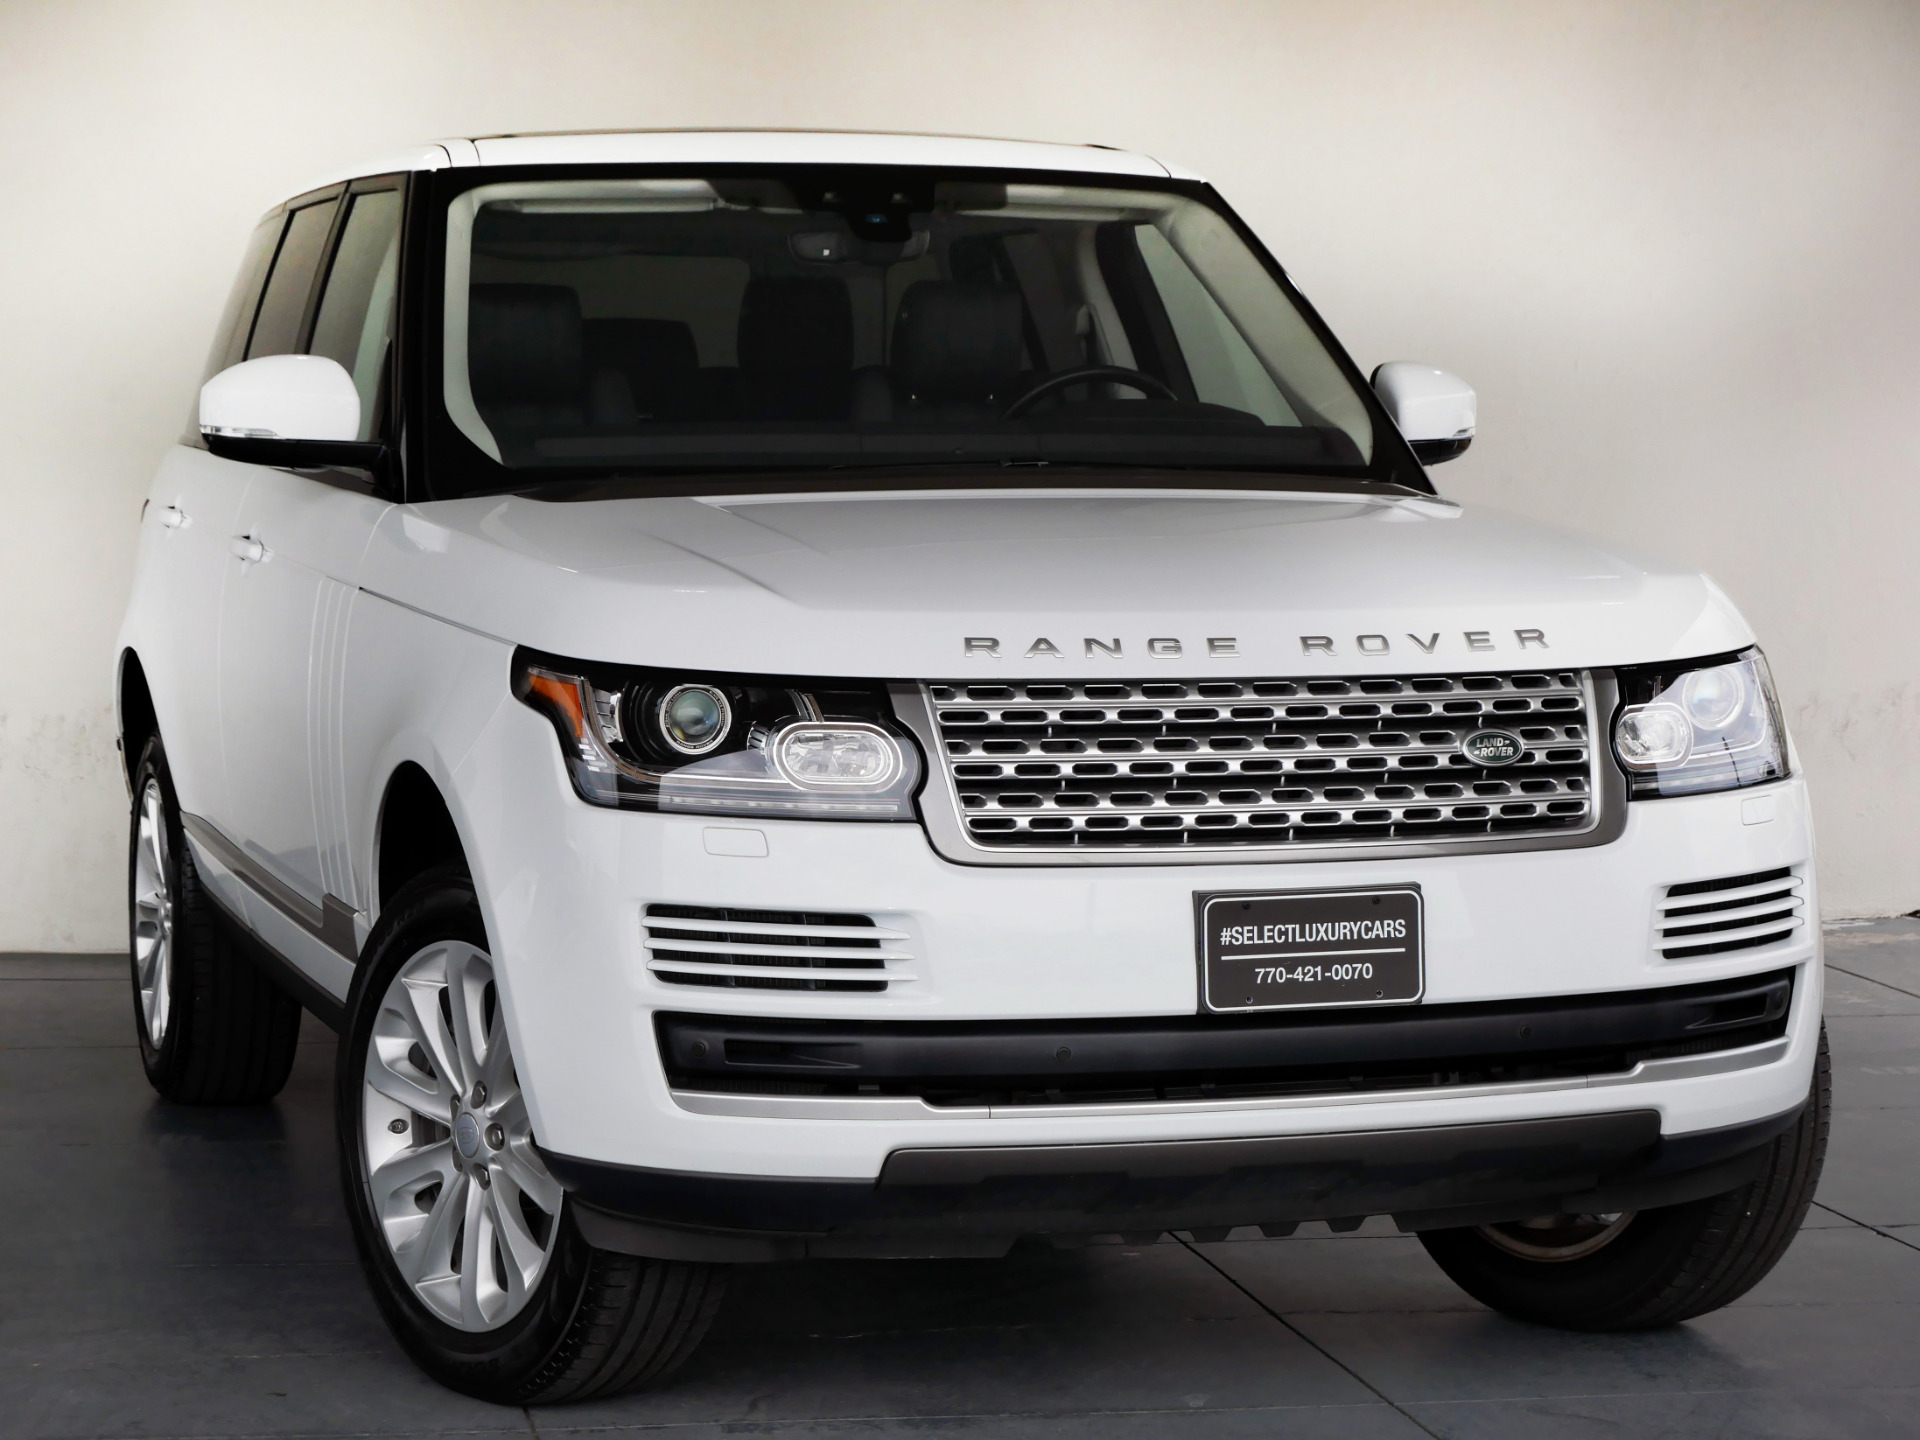 2017 Land Rover Range Rover 3.0L V6 Supercharged HSE